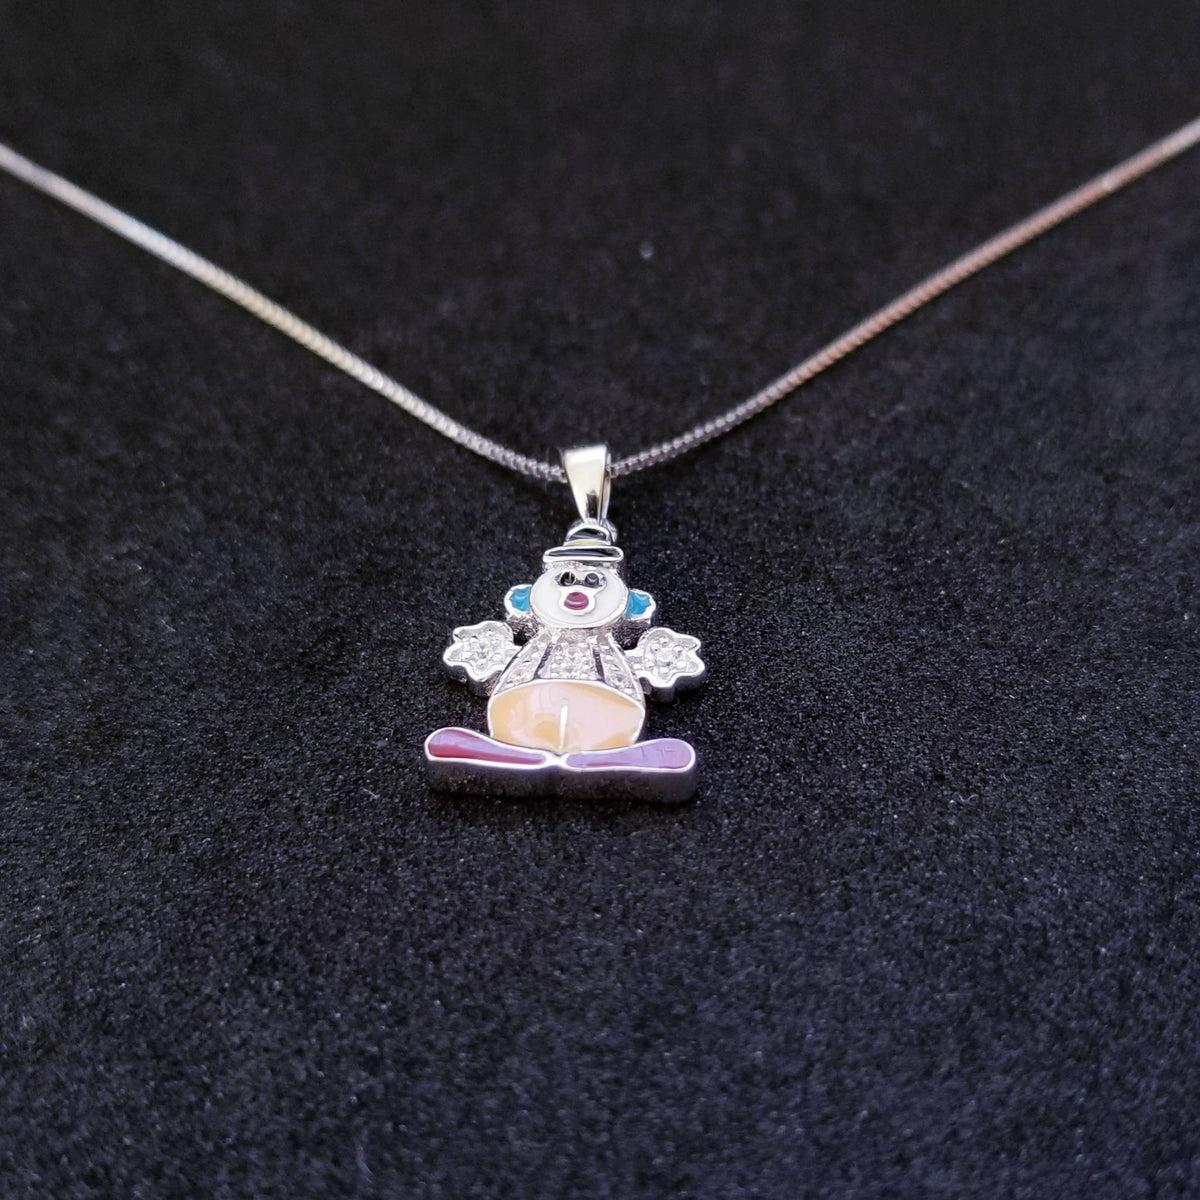 New 14k White Gold On 925 Sterling Silver Small Clown CZ Stones Pendant Free Chain